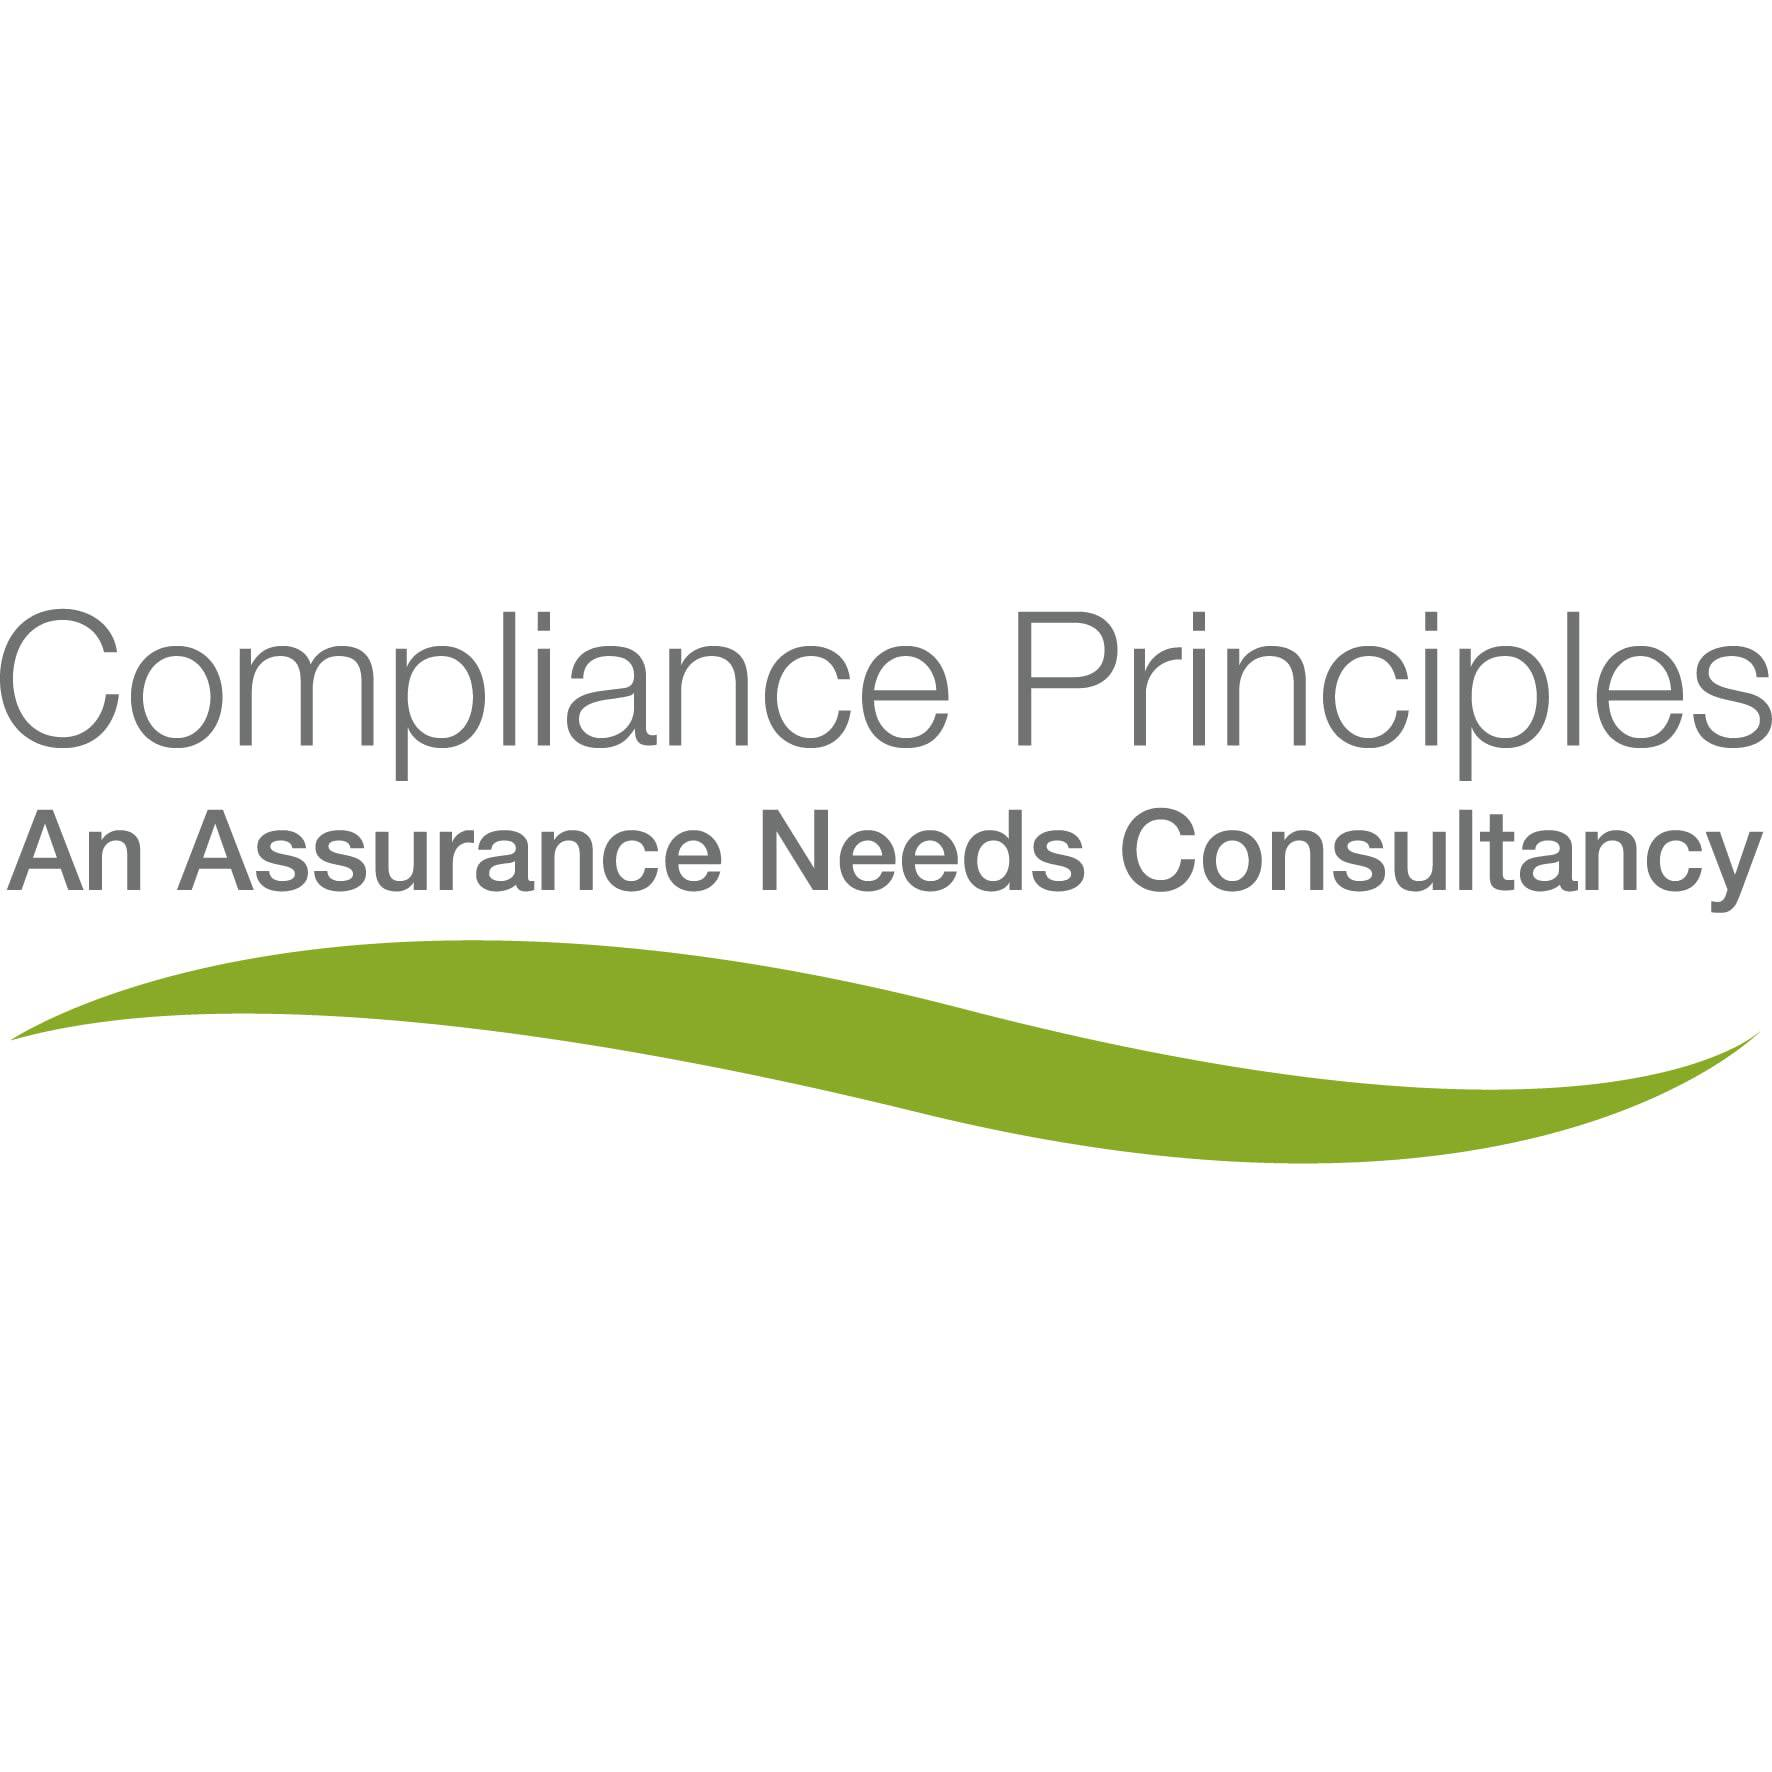 Compliance Principles Ltd - Stoke-On-Trent, Staffordshire ST10 4DY - 01538 723424 | ShowMeLocal.com